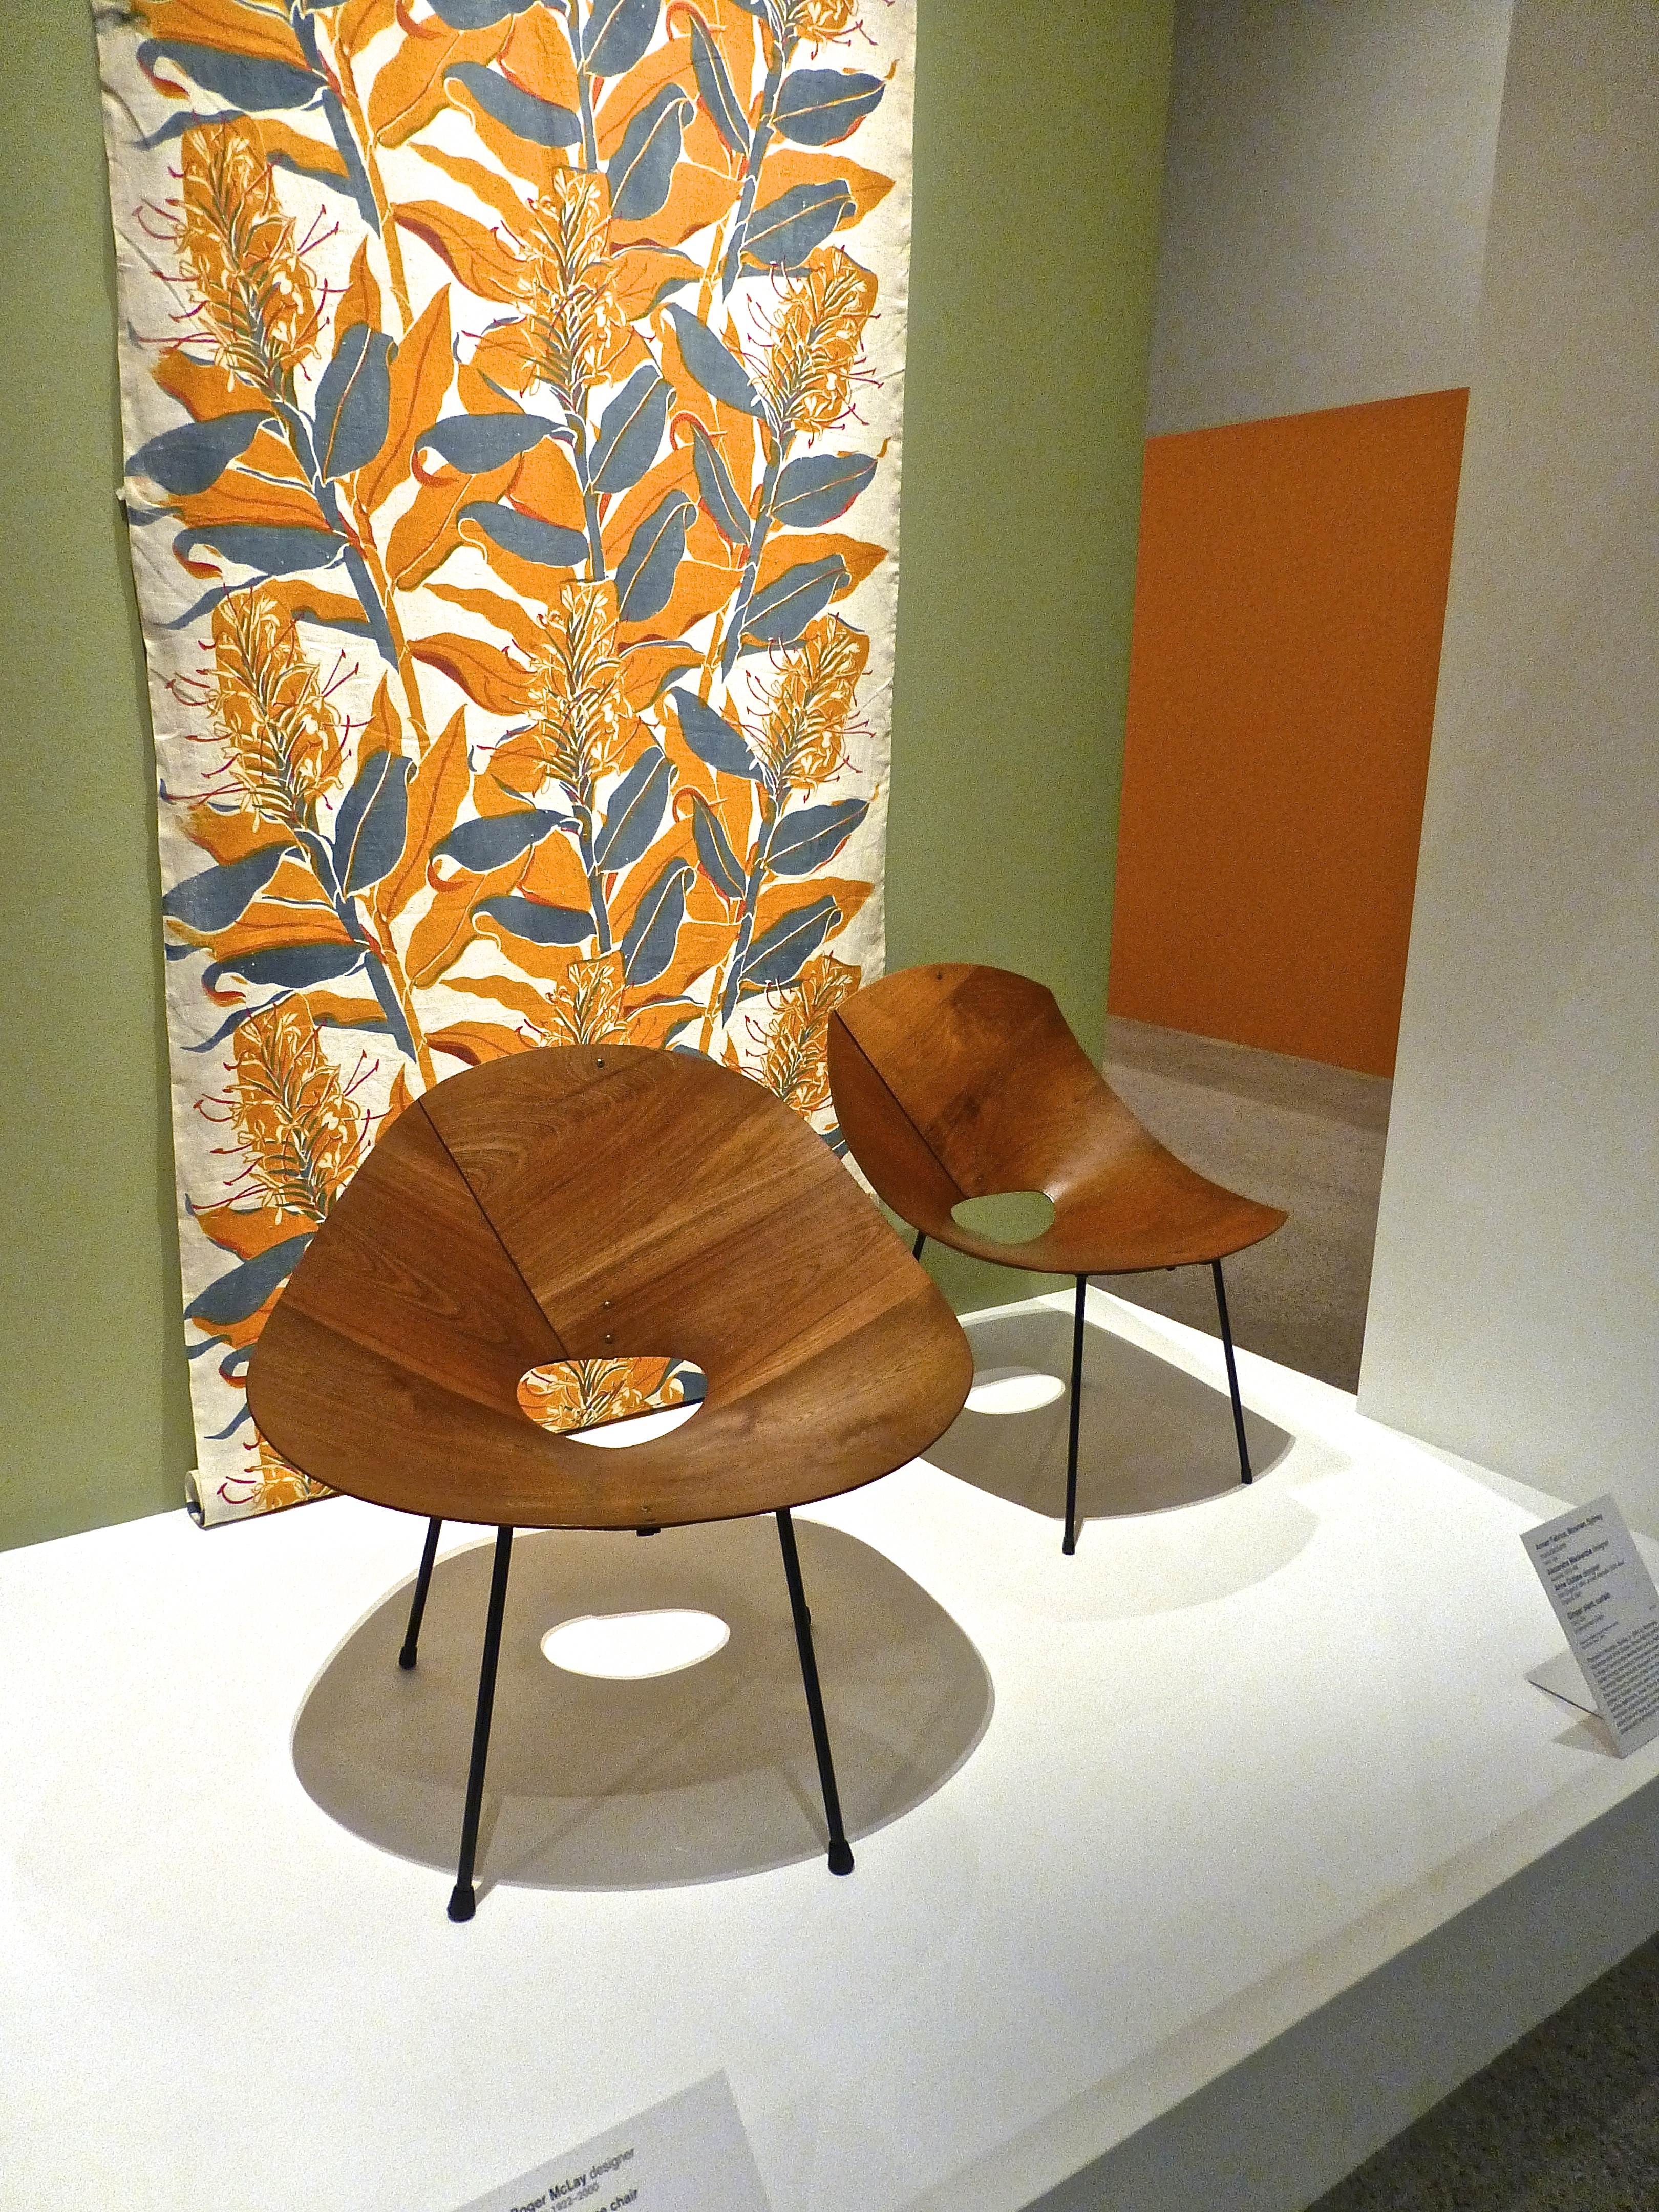 Kone Chair by Roger McLay, 1948.